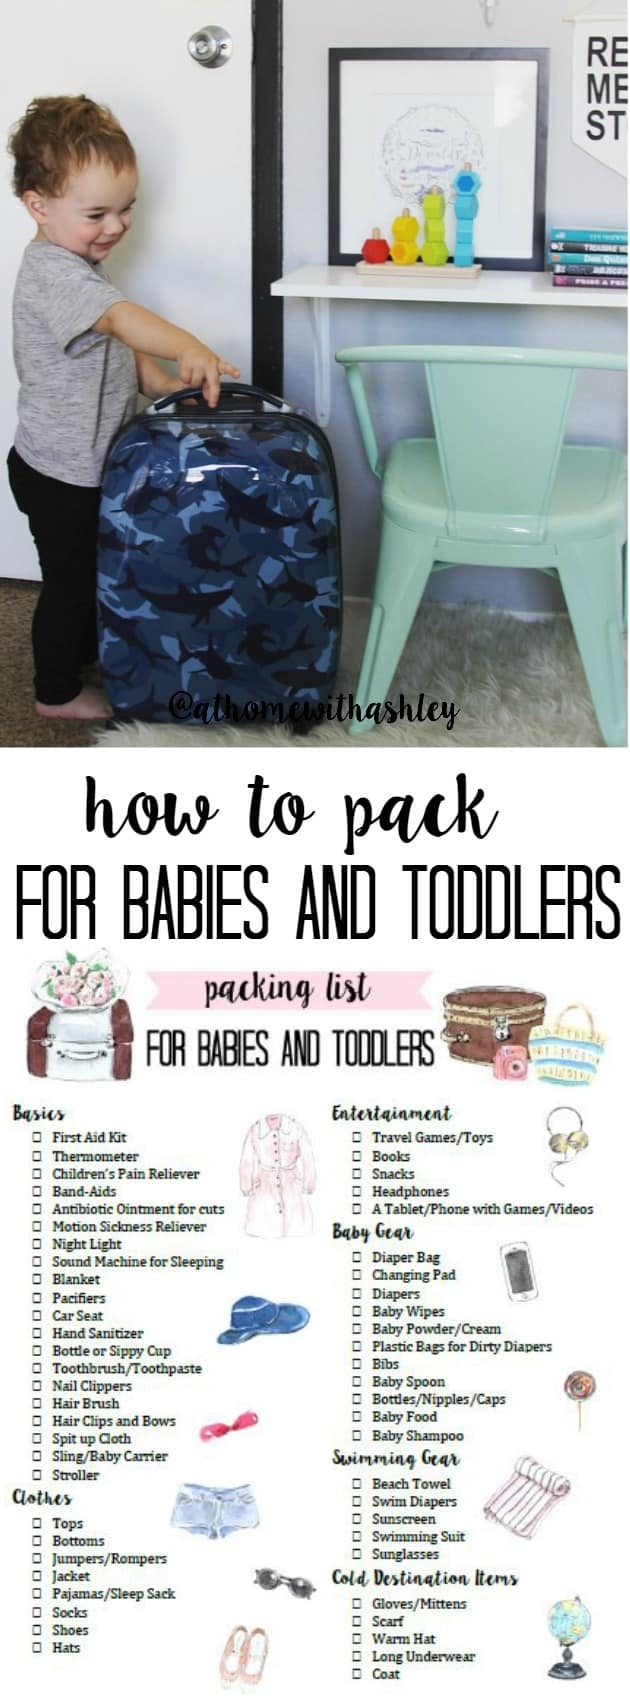 how-to-pack-for-babies-and-toddlers